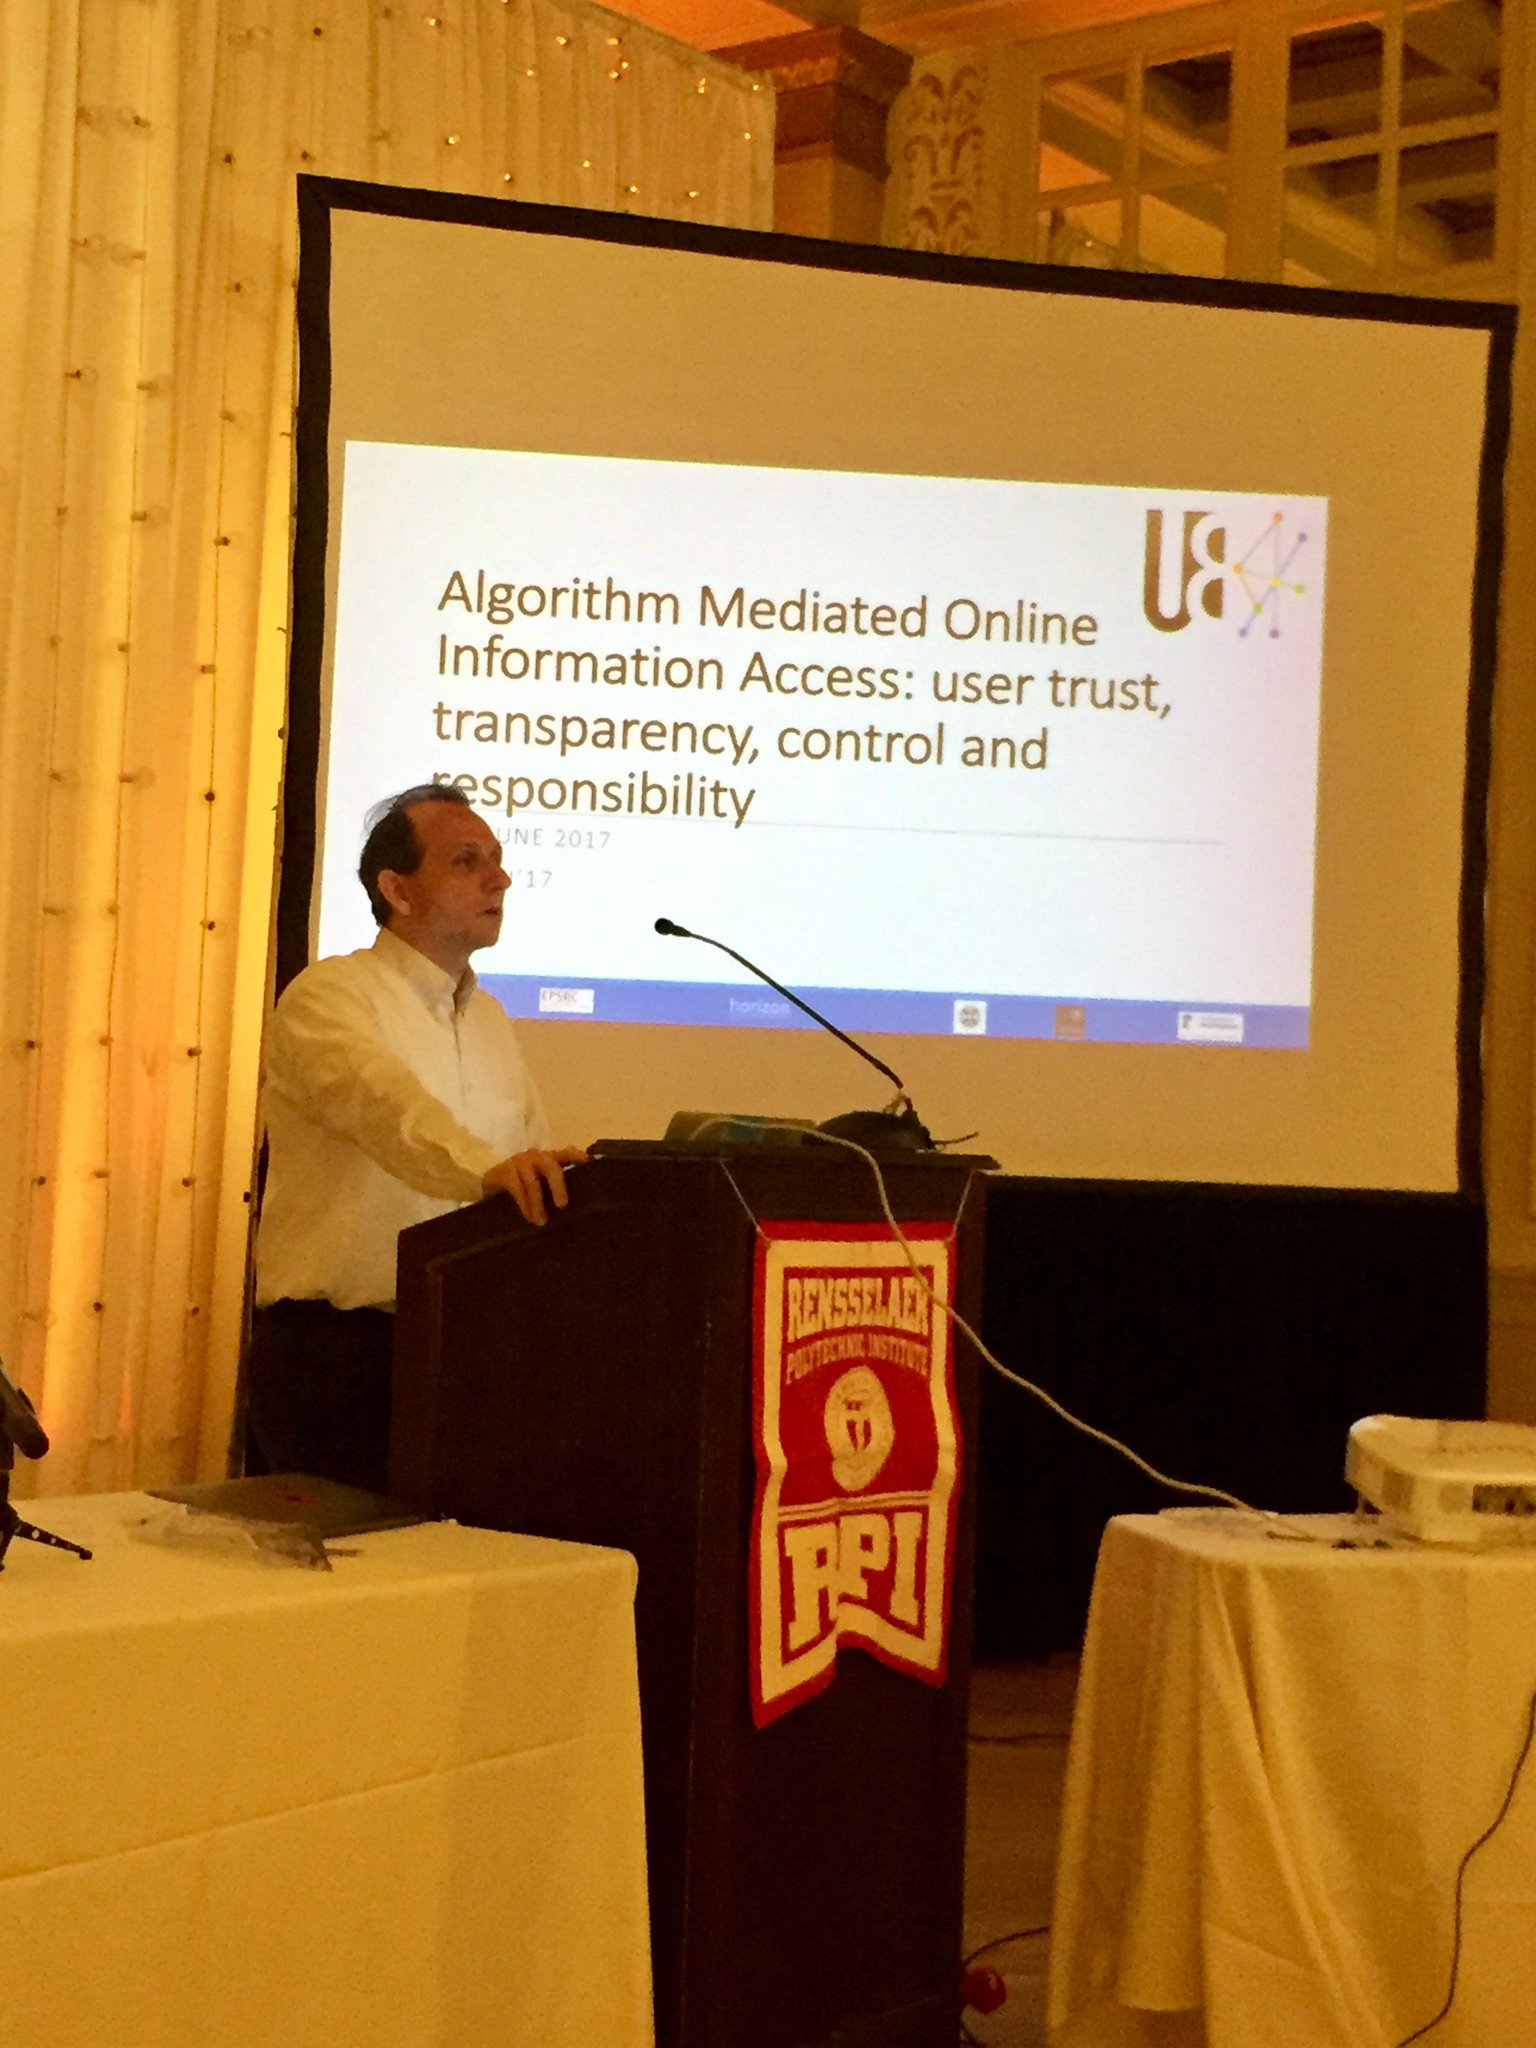 Great overview of the AMOIA workshop #websci17 by @arkoene focused on the UnBias project & role of algorithms mediating online info access https://t.co/AXfDLtiS19